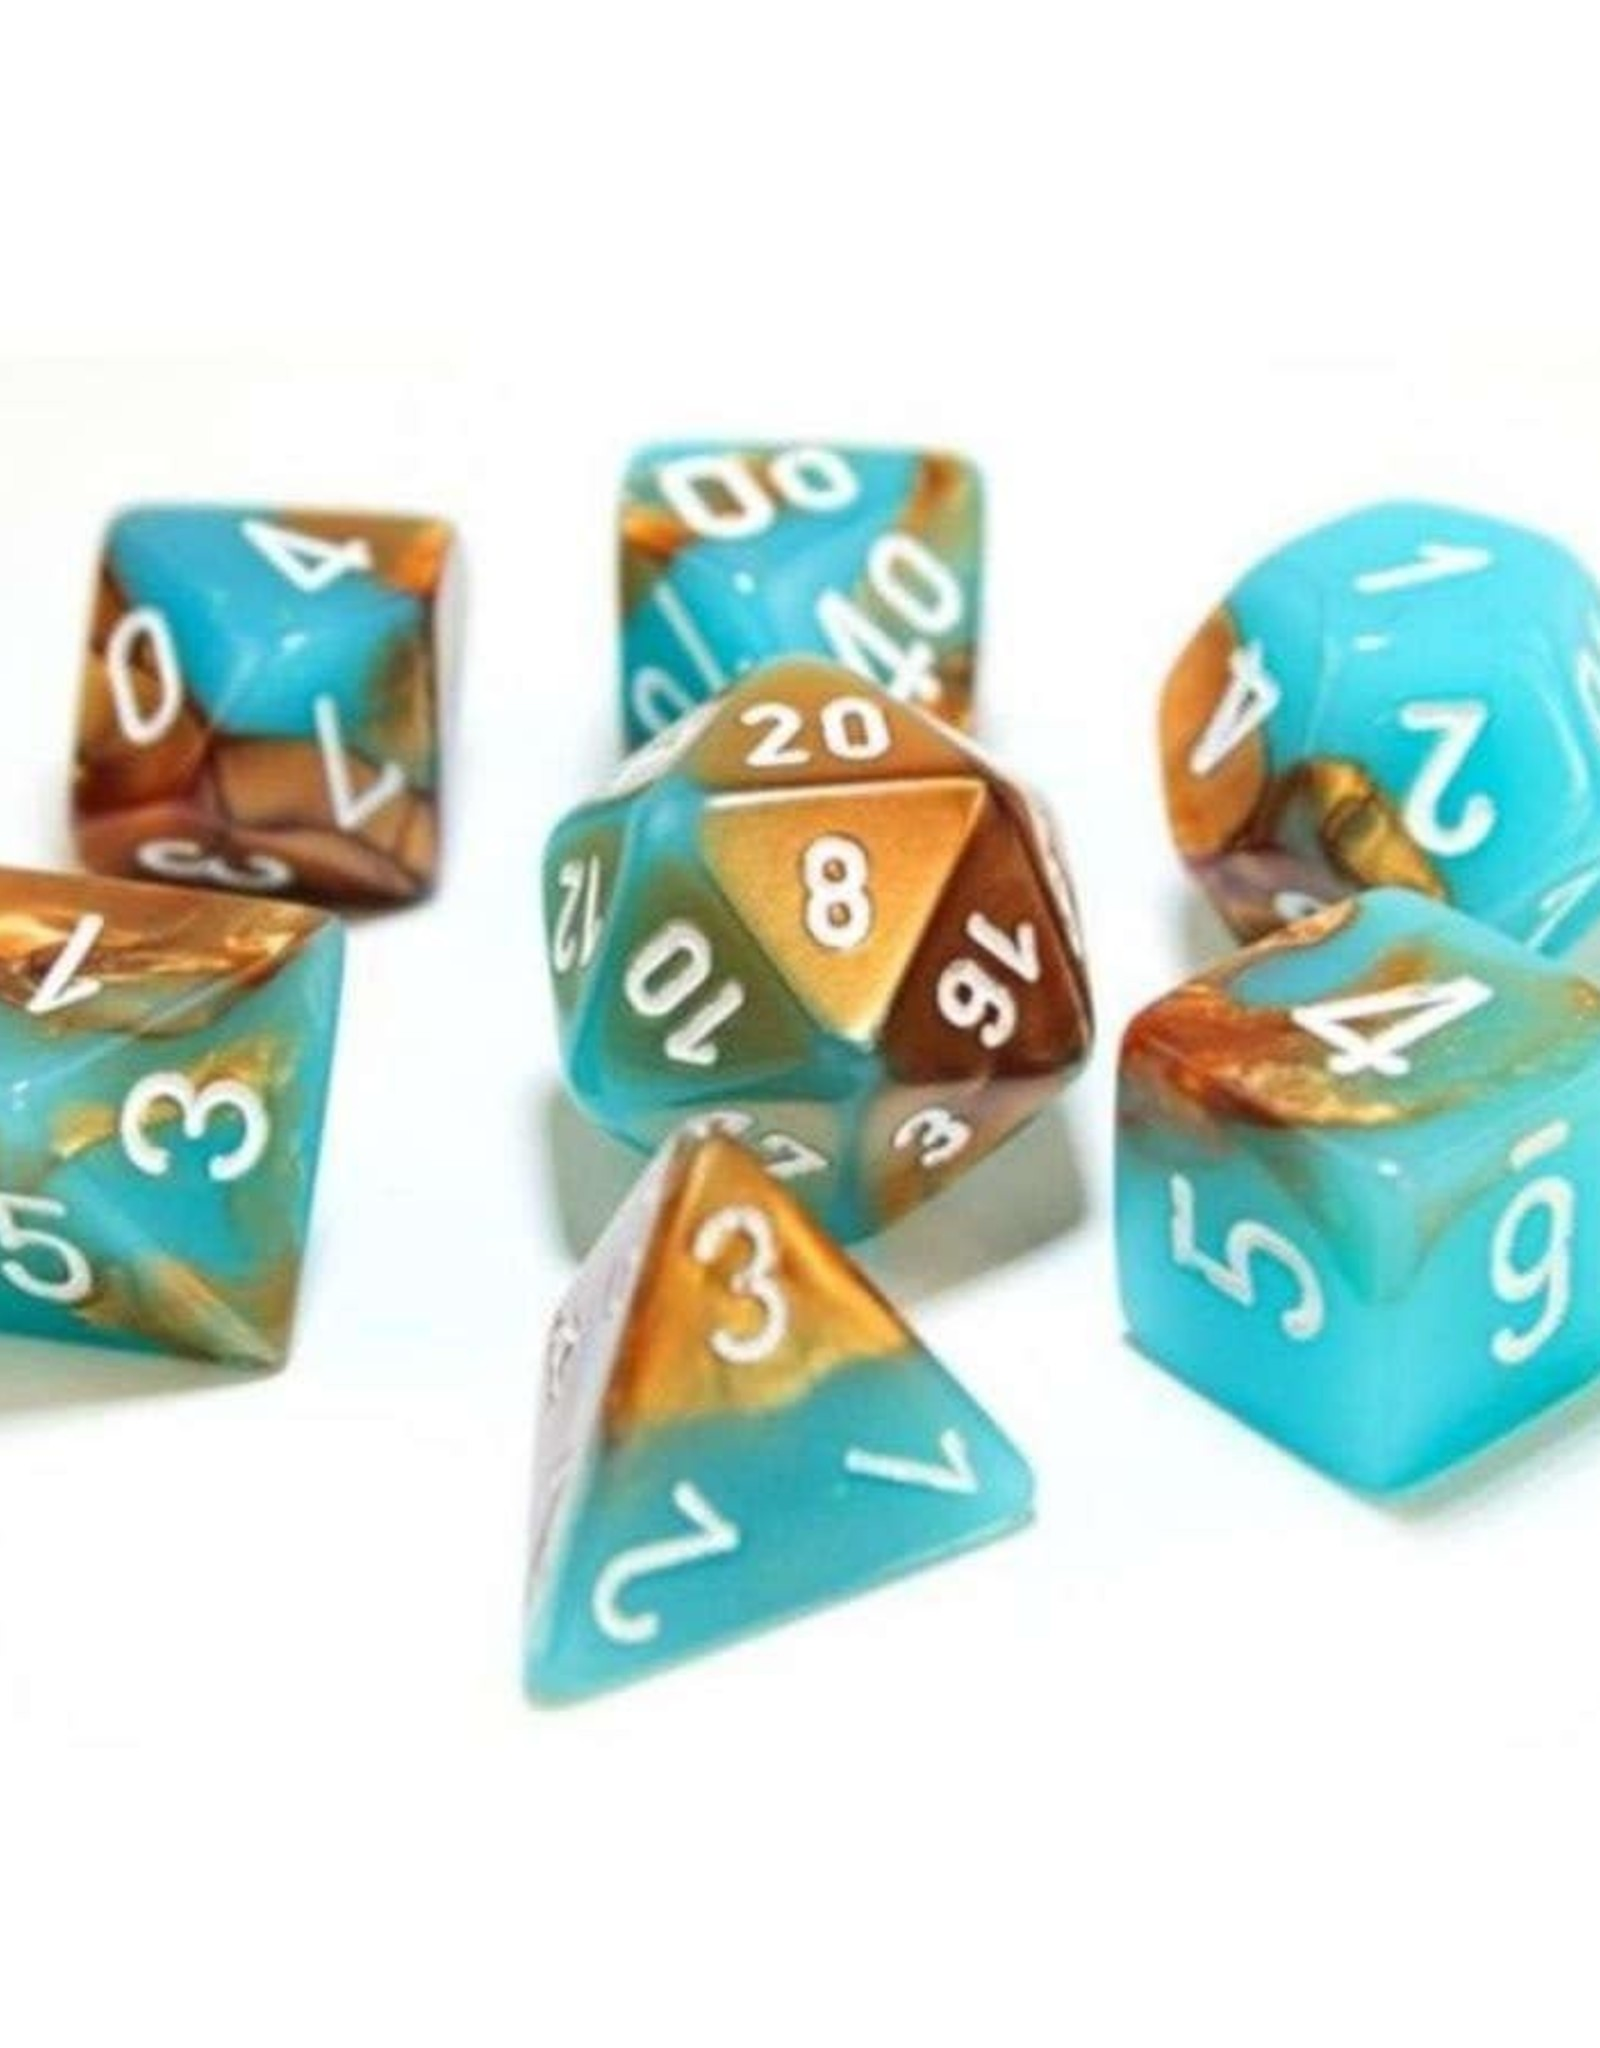 Chessex DICE GEMINI 7-DIE SET COPPER TURQUOISE/WHITE